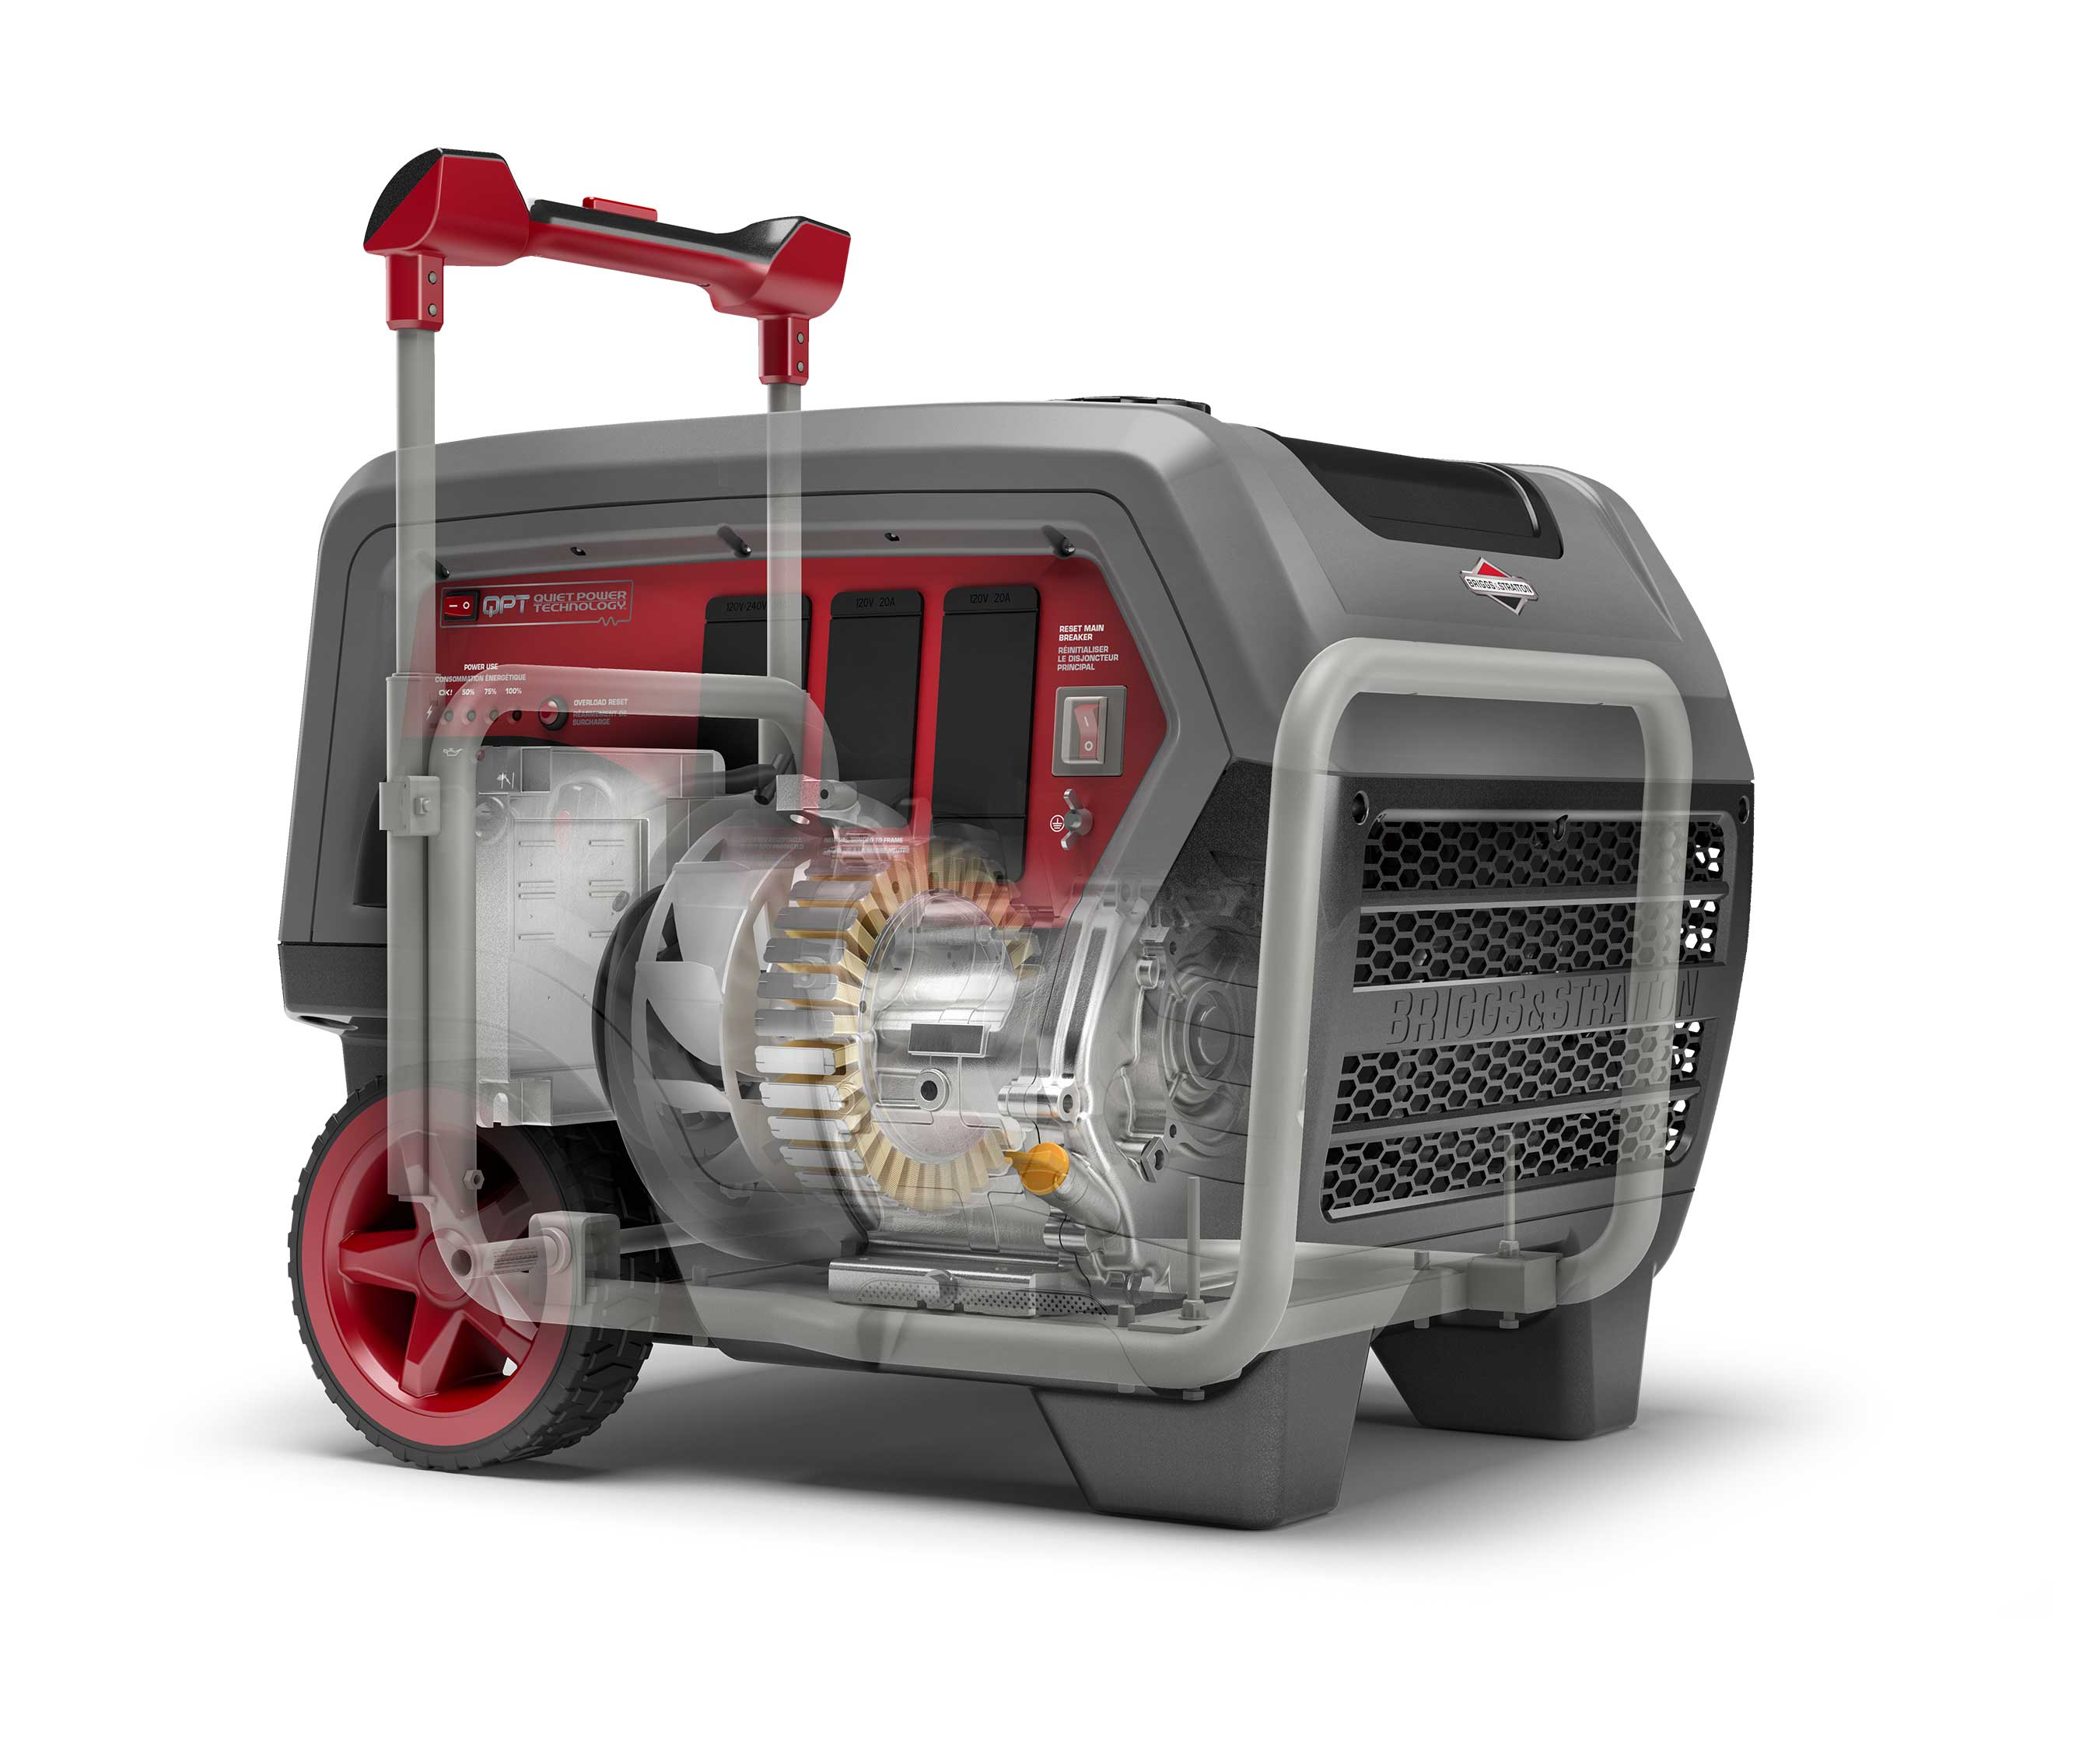 Briggs & Stratton's new Q6500 QuietPower™ Series inverter generator features a fully-enclosed protective shell that houses an all-steel frame, keeps internal components safe and minimizes noise.